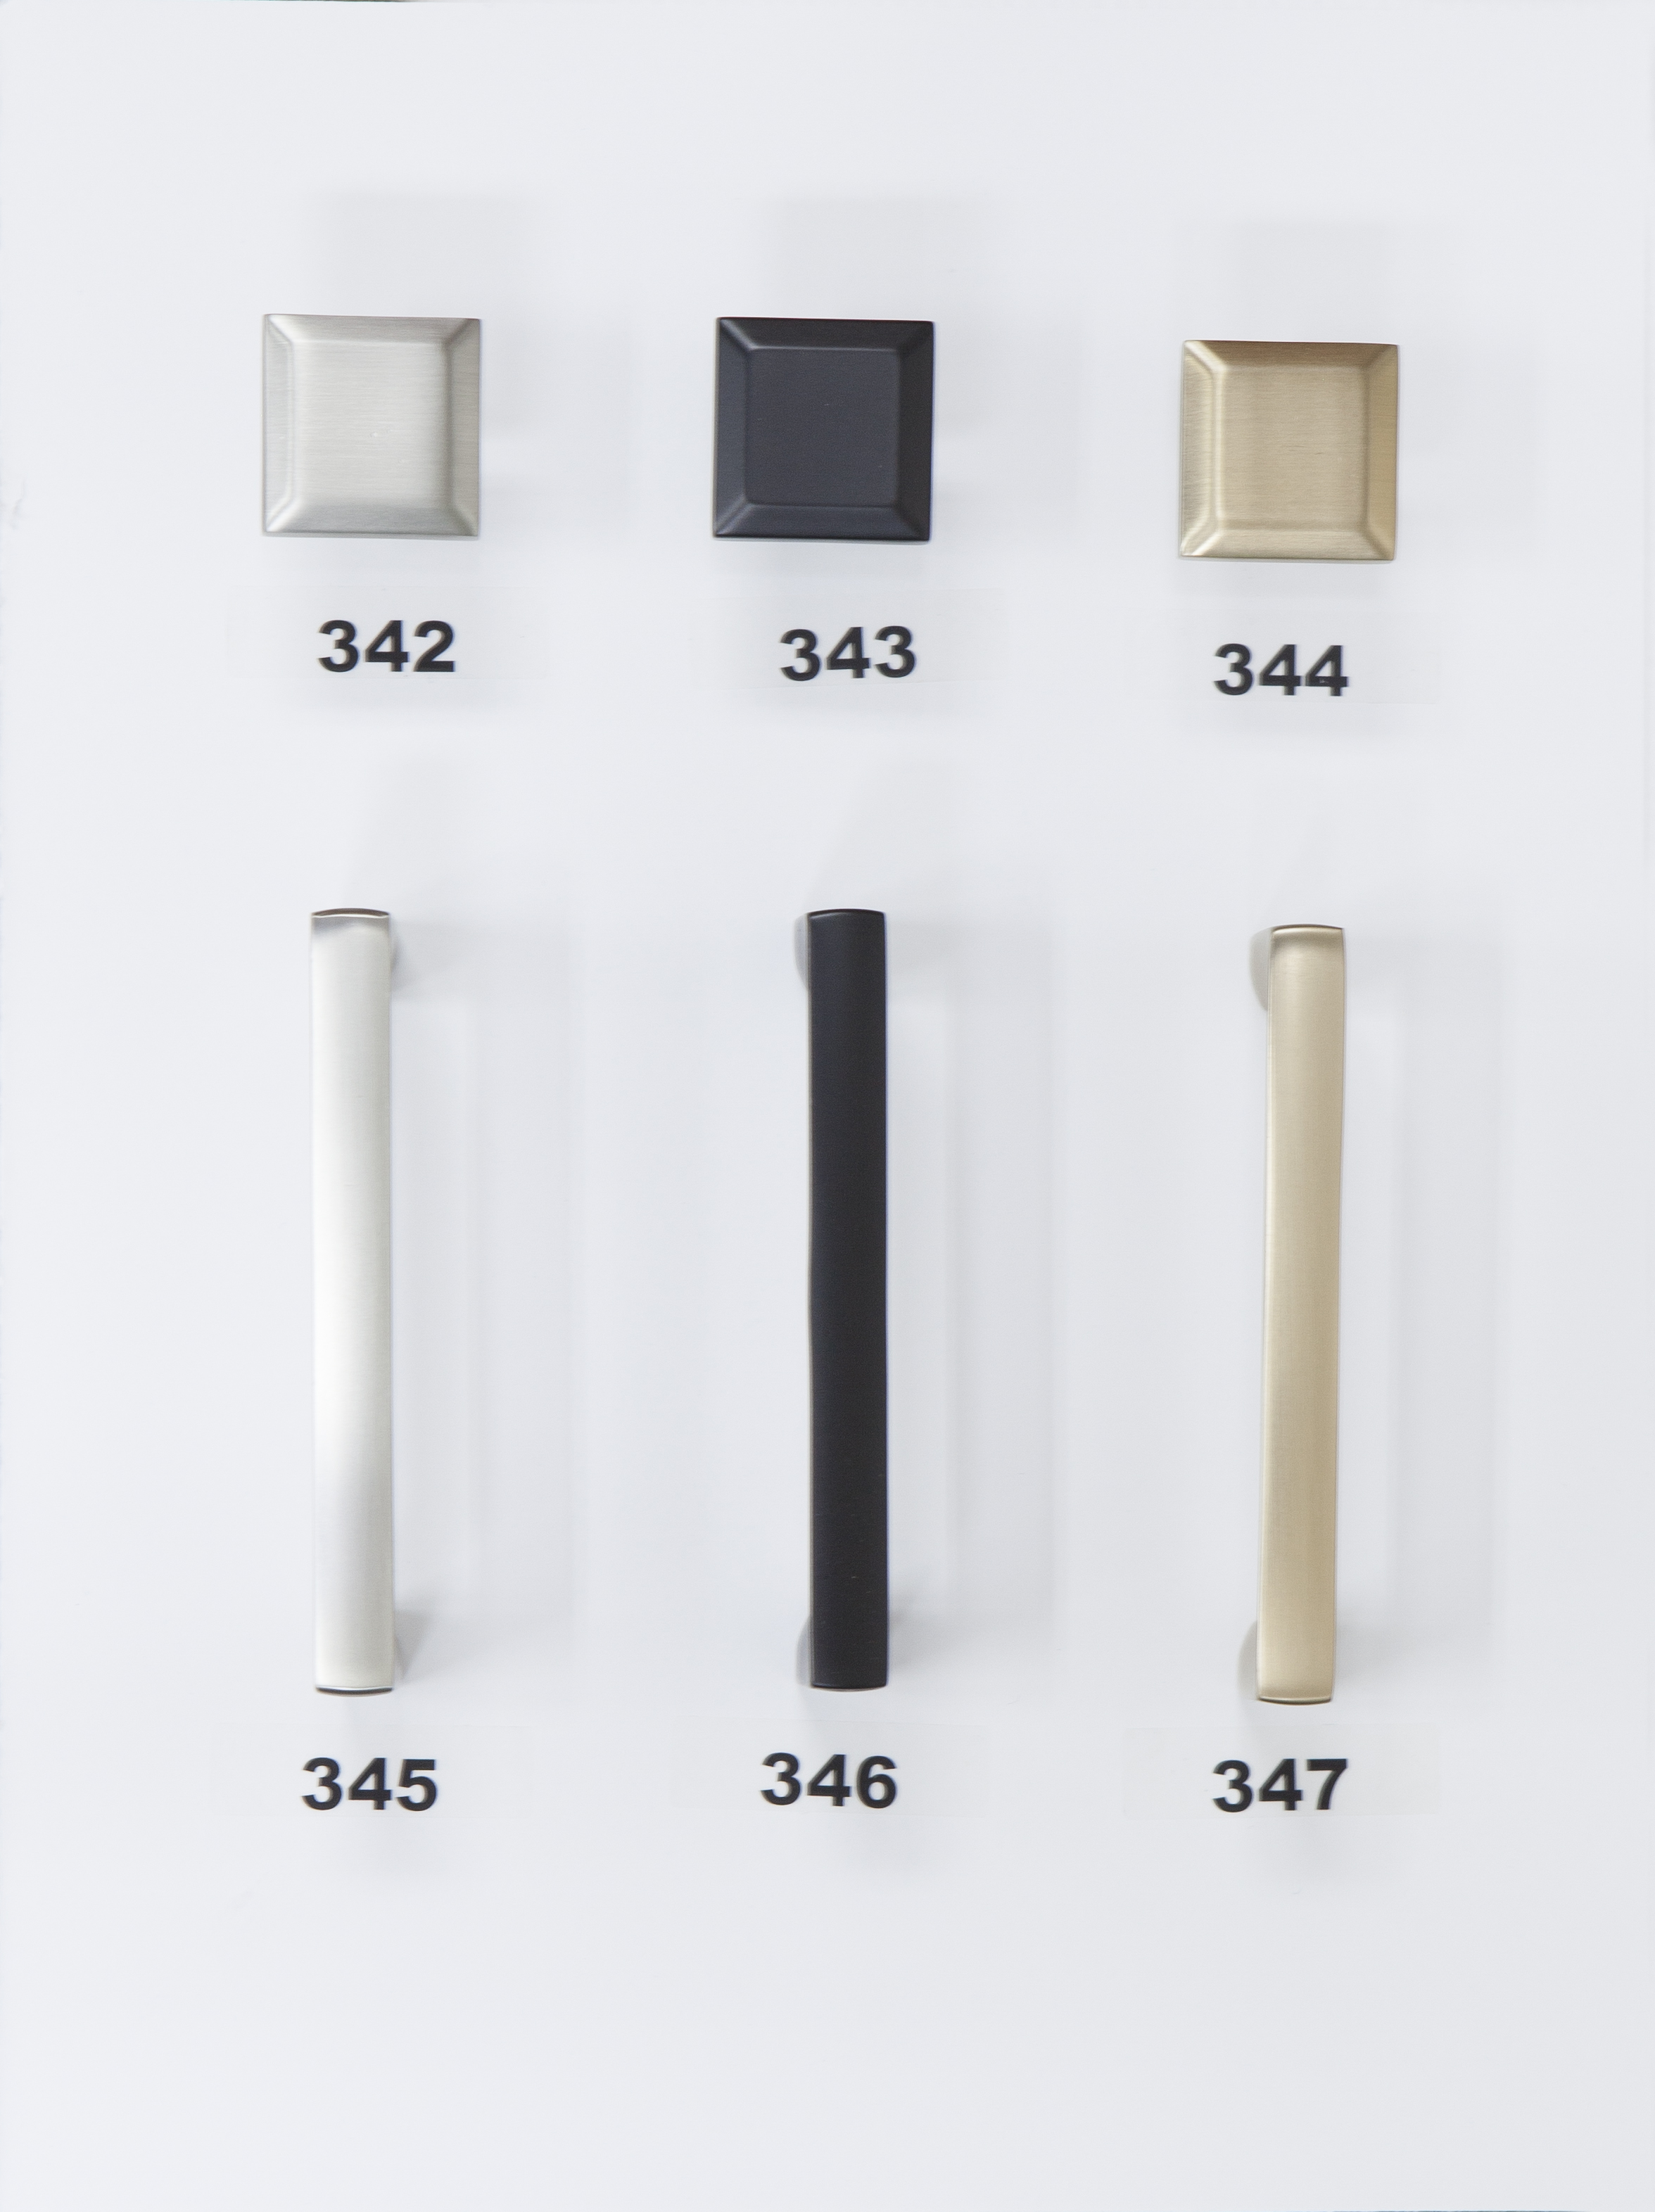 "#342 - Knob - Brushed Nickel  #343 - Knob - Flat Black  #344 - Knob - Modern Bronze  #345 - 3 3/4"" Center - Brushed Nickel  #346 - 3 3/4"" Center - Flat Black  #347 - 3 3/4"" Center - Modern Bronze"